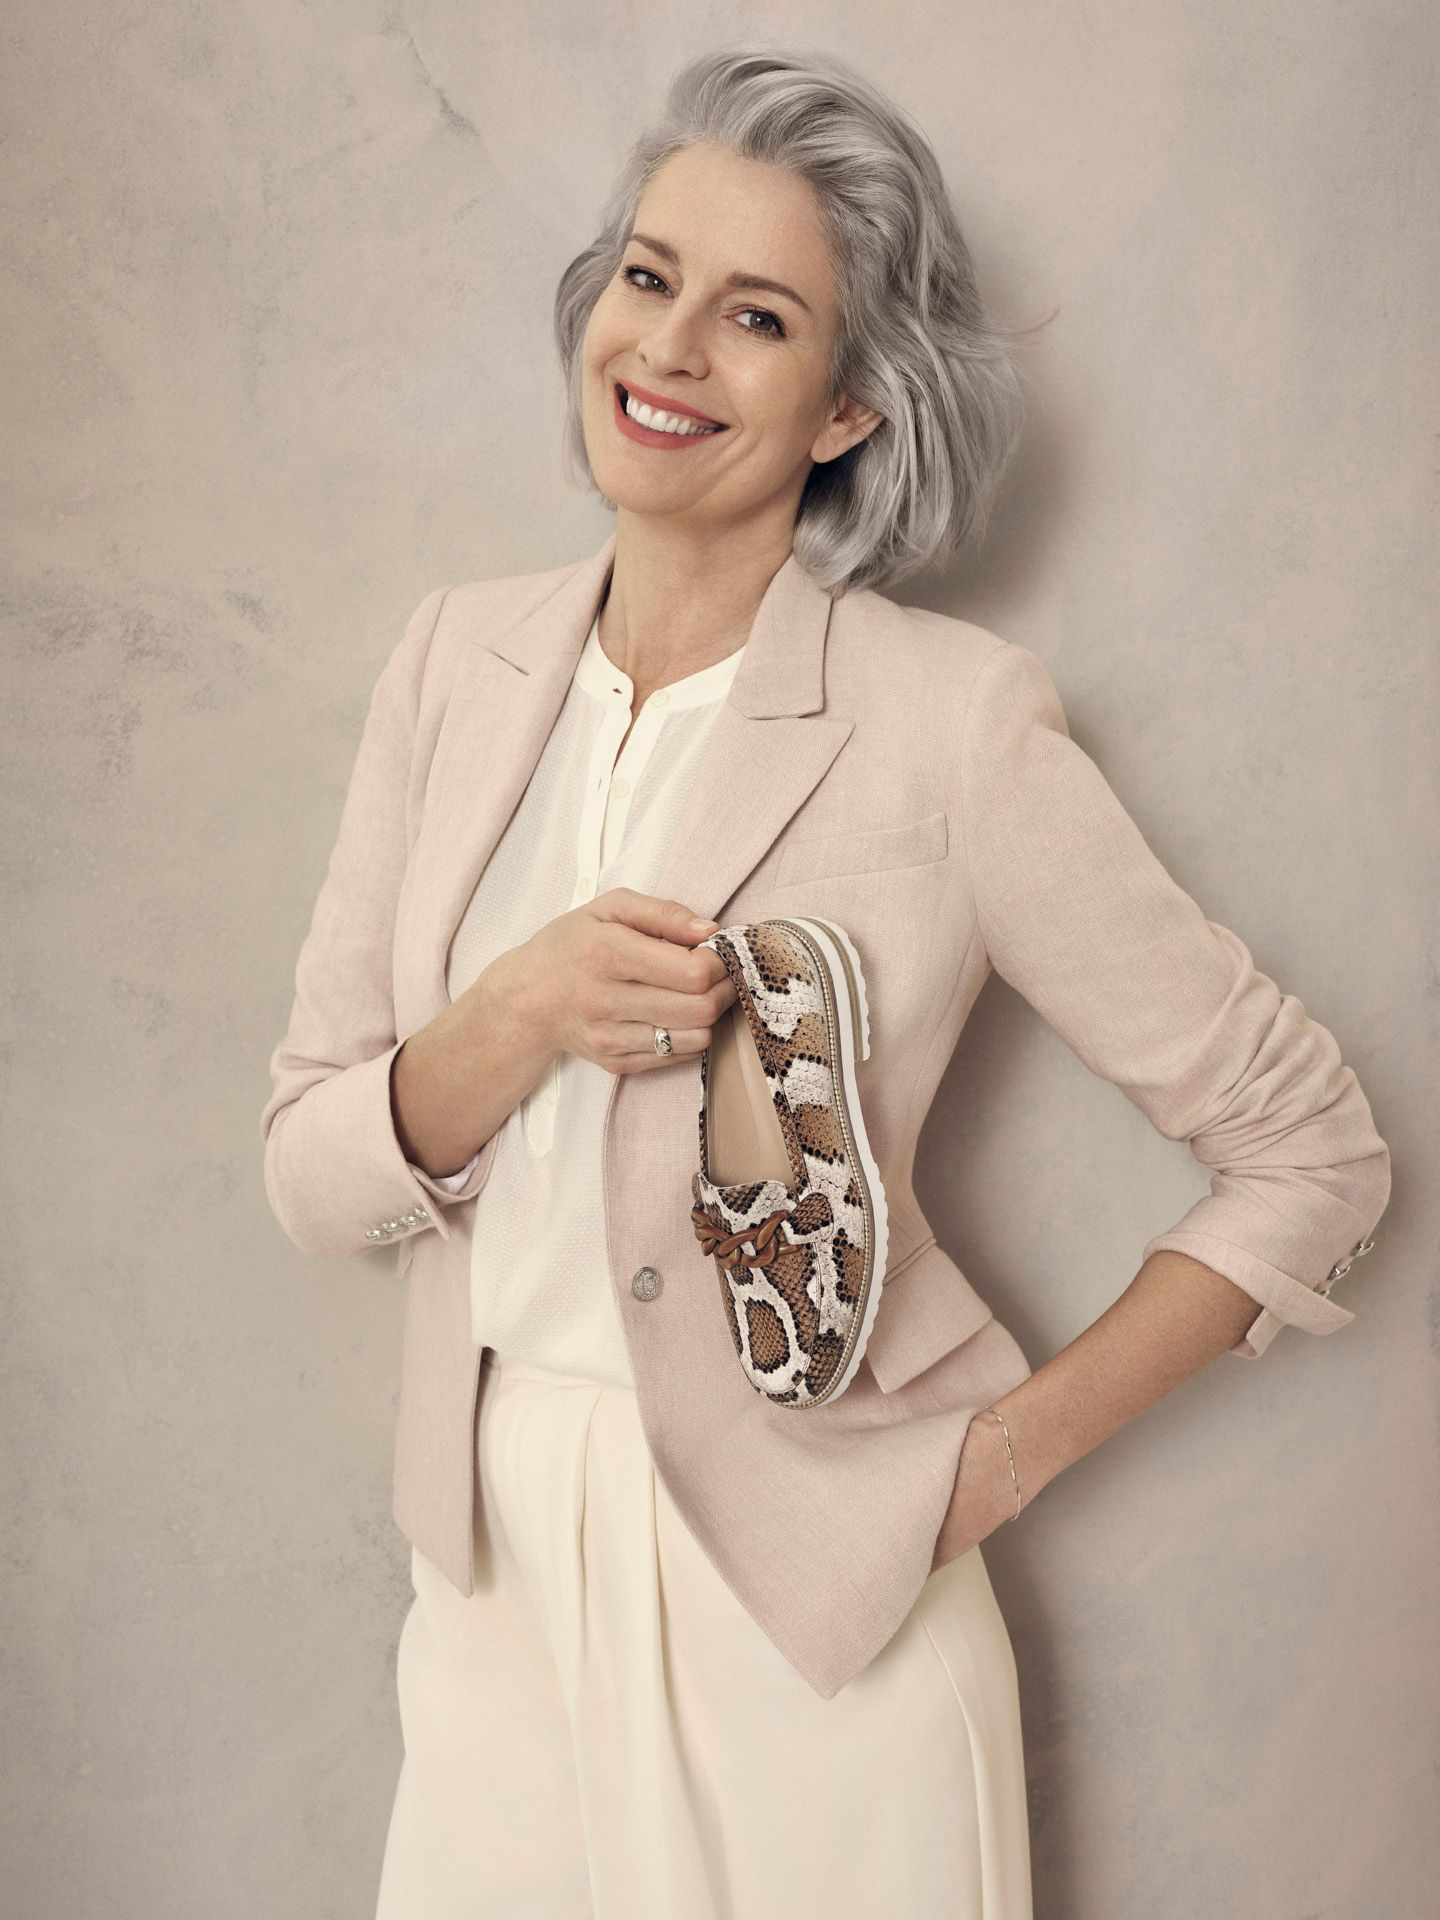 portrait of older woman smiling wearing white pants with white shirt and soft pink holding snake printed loafer for Jean-Paul Fortin summer-spring collection photographed by Maxyme G Delisle with artistic direction, conception and set design by Studio TB